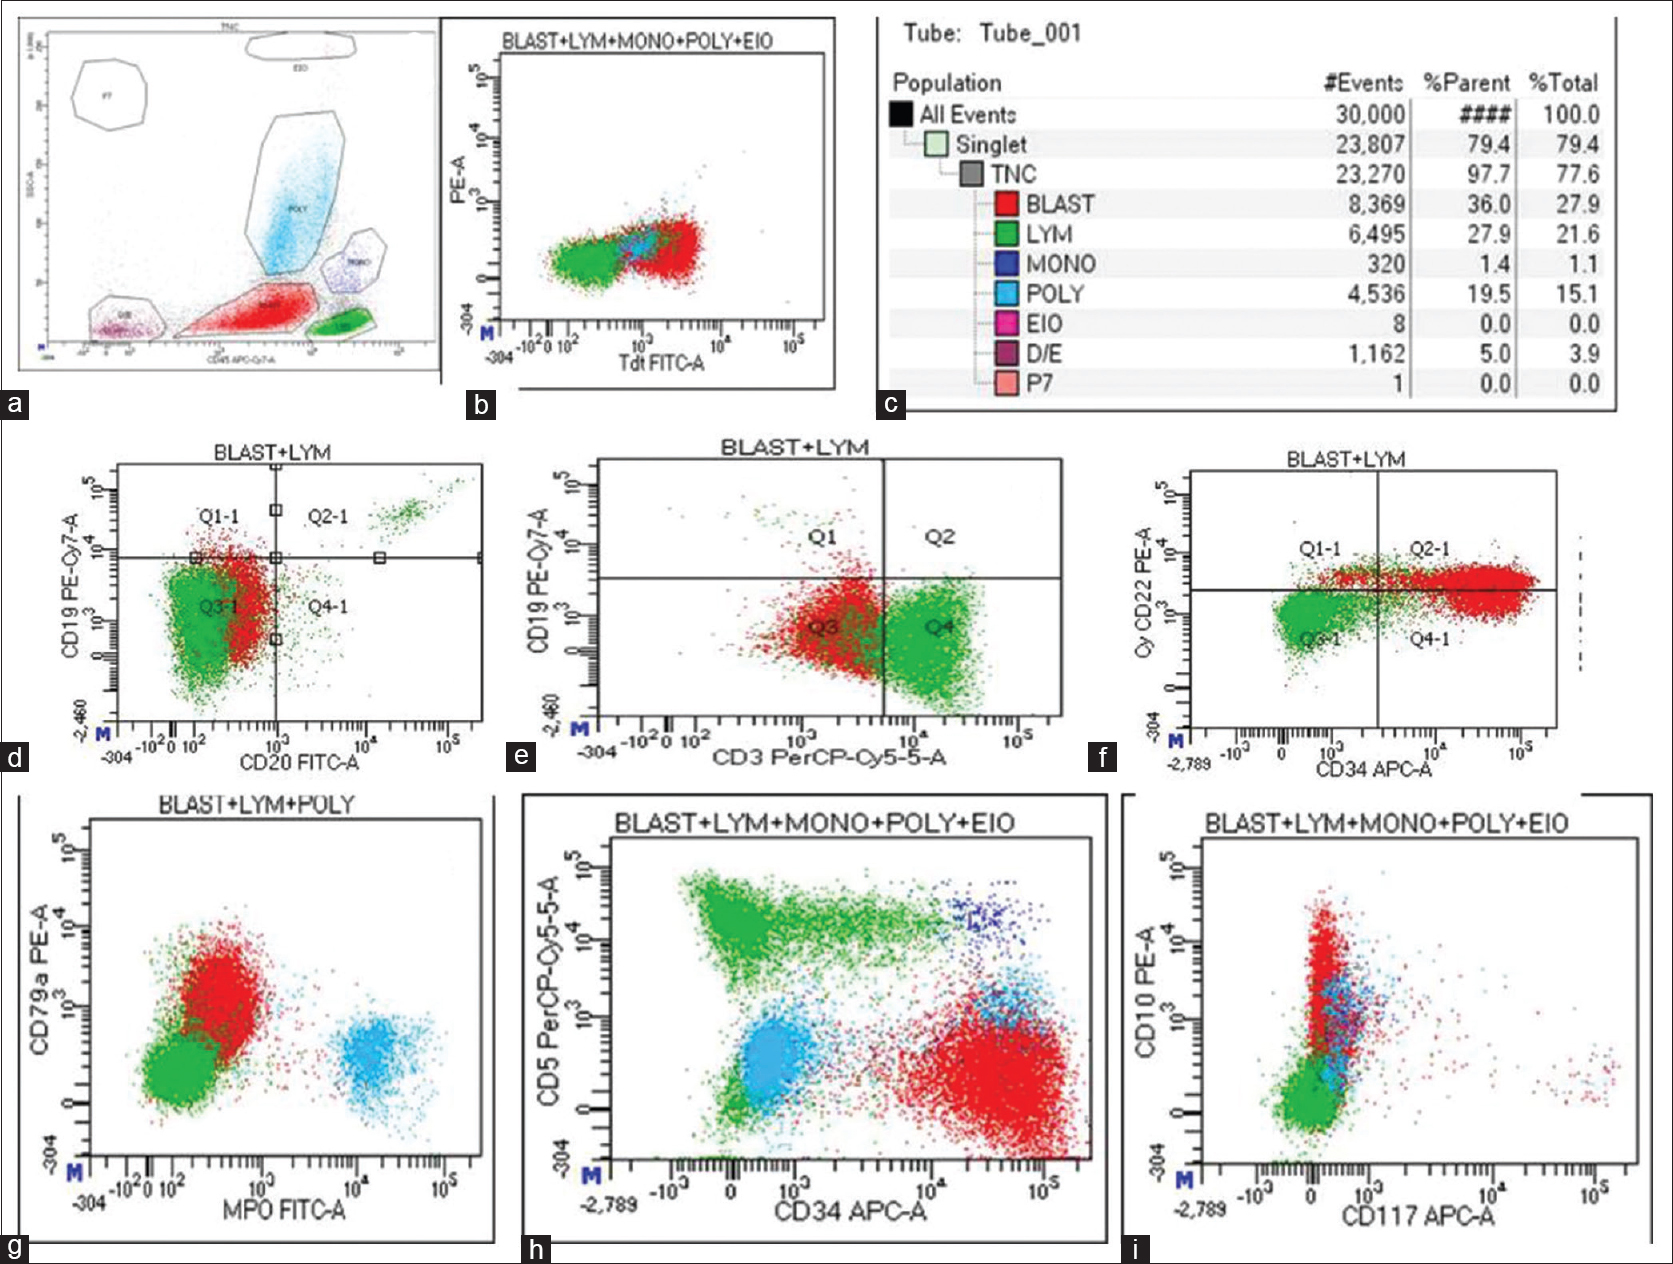 Figure 1: Flow cytometric immunophenotyping graphs. Blasts are shown in red, lymphocyte in green, and maturing myeloid cells in blue. (a) 36% blasts, (b) TdT positivity, (c) statistics, (d and e) CD19 negativity, (f) CD34-positive leukoblasts with dim CD22 positivity, (g and h) CD79a positivity with MPO and CD5 negativity, and (i) heterogenous CD10 positivity